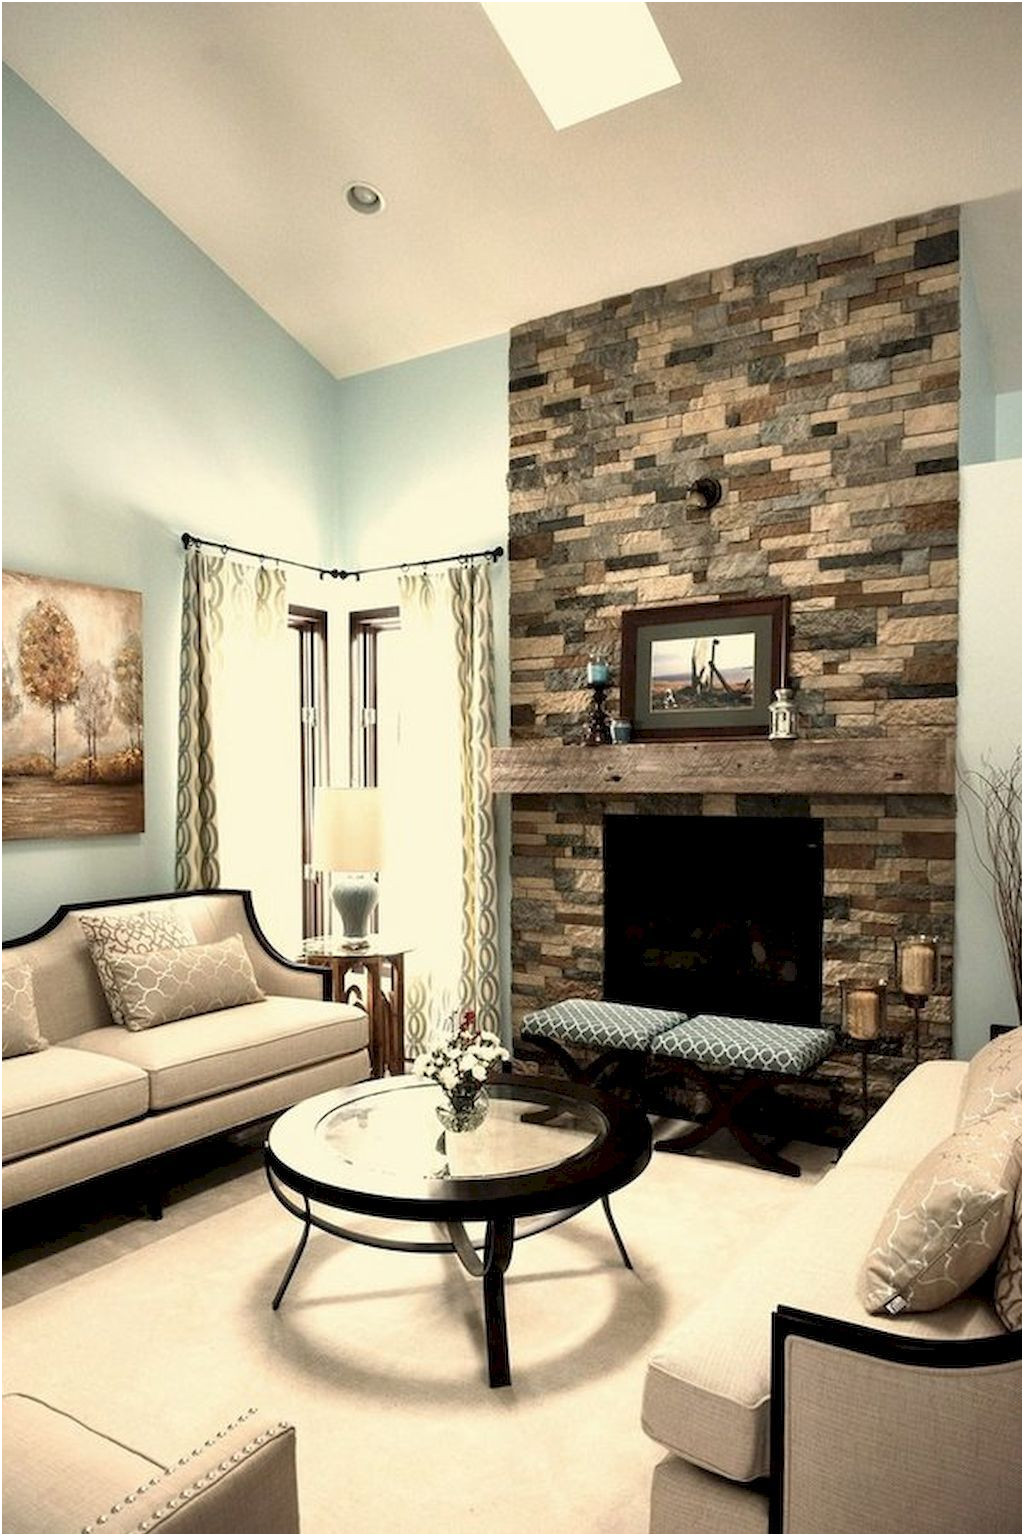 Ideas for Fireplace Decor Lovely 70 Gorgeous Apartment Fireplace Decorating Ideas